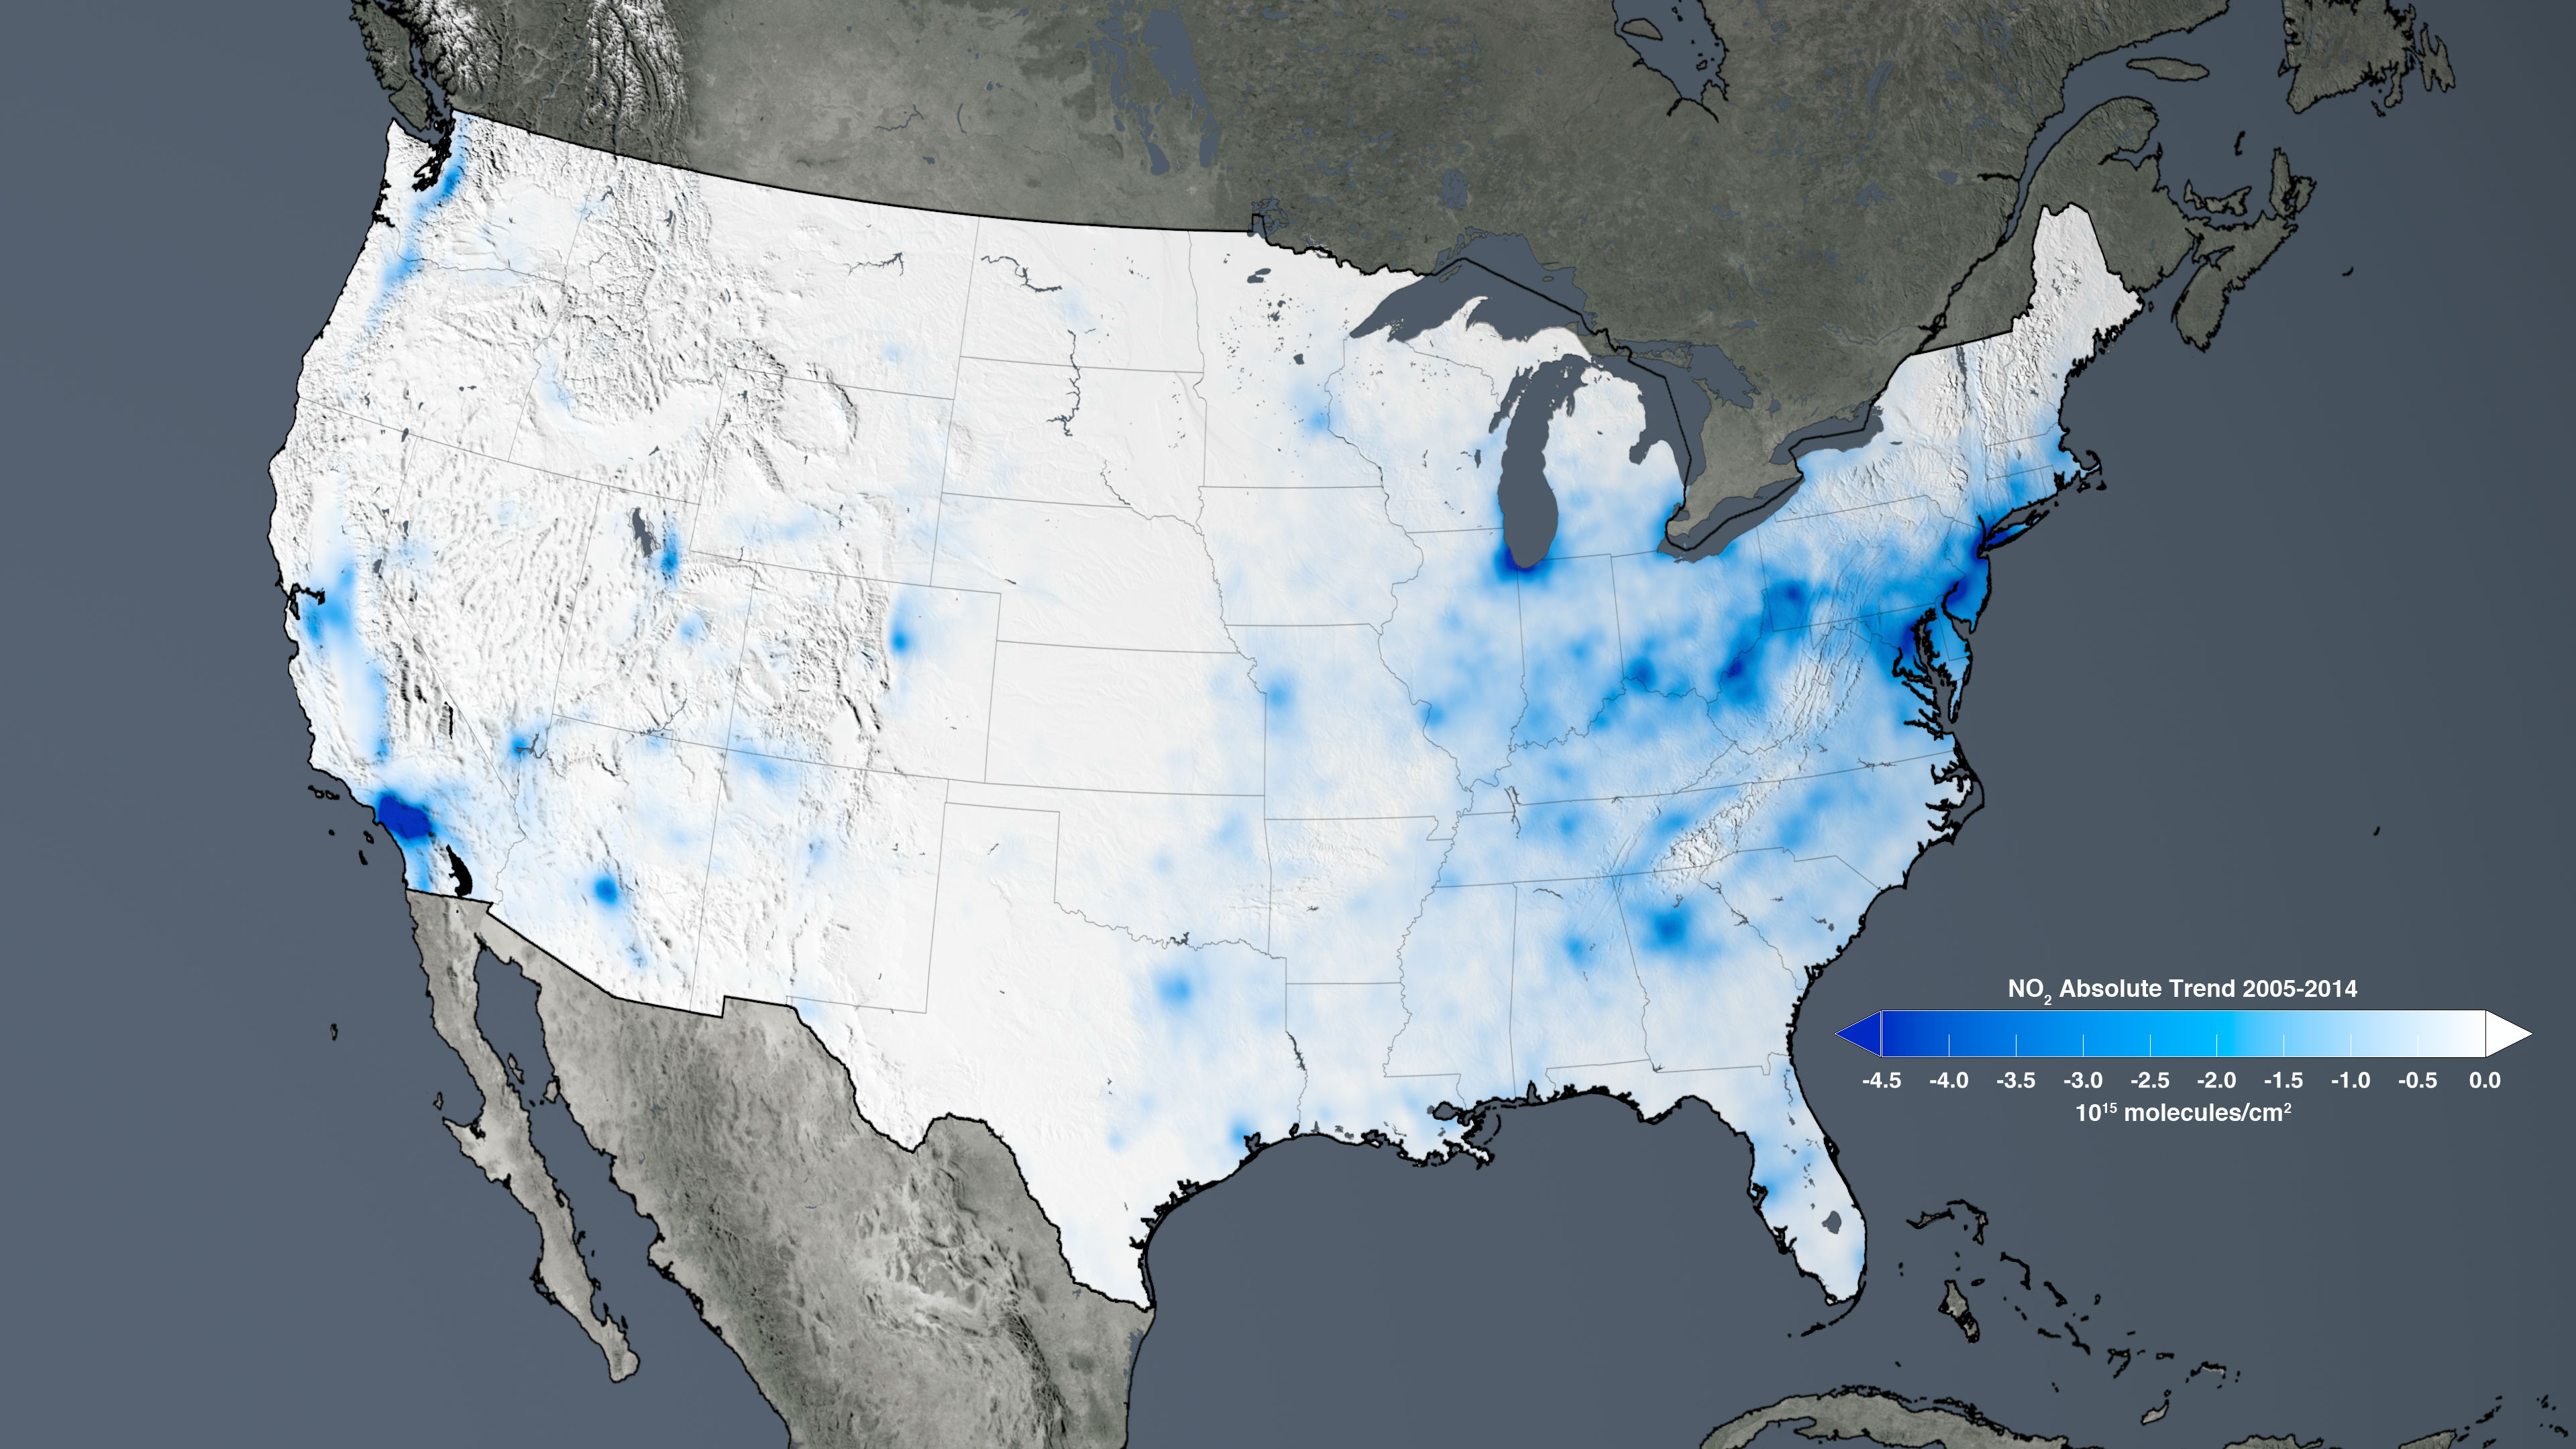 New NASA Satellite Maps Show Human Fingerprint On Global Air - Show map of the us